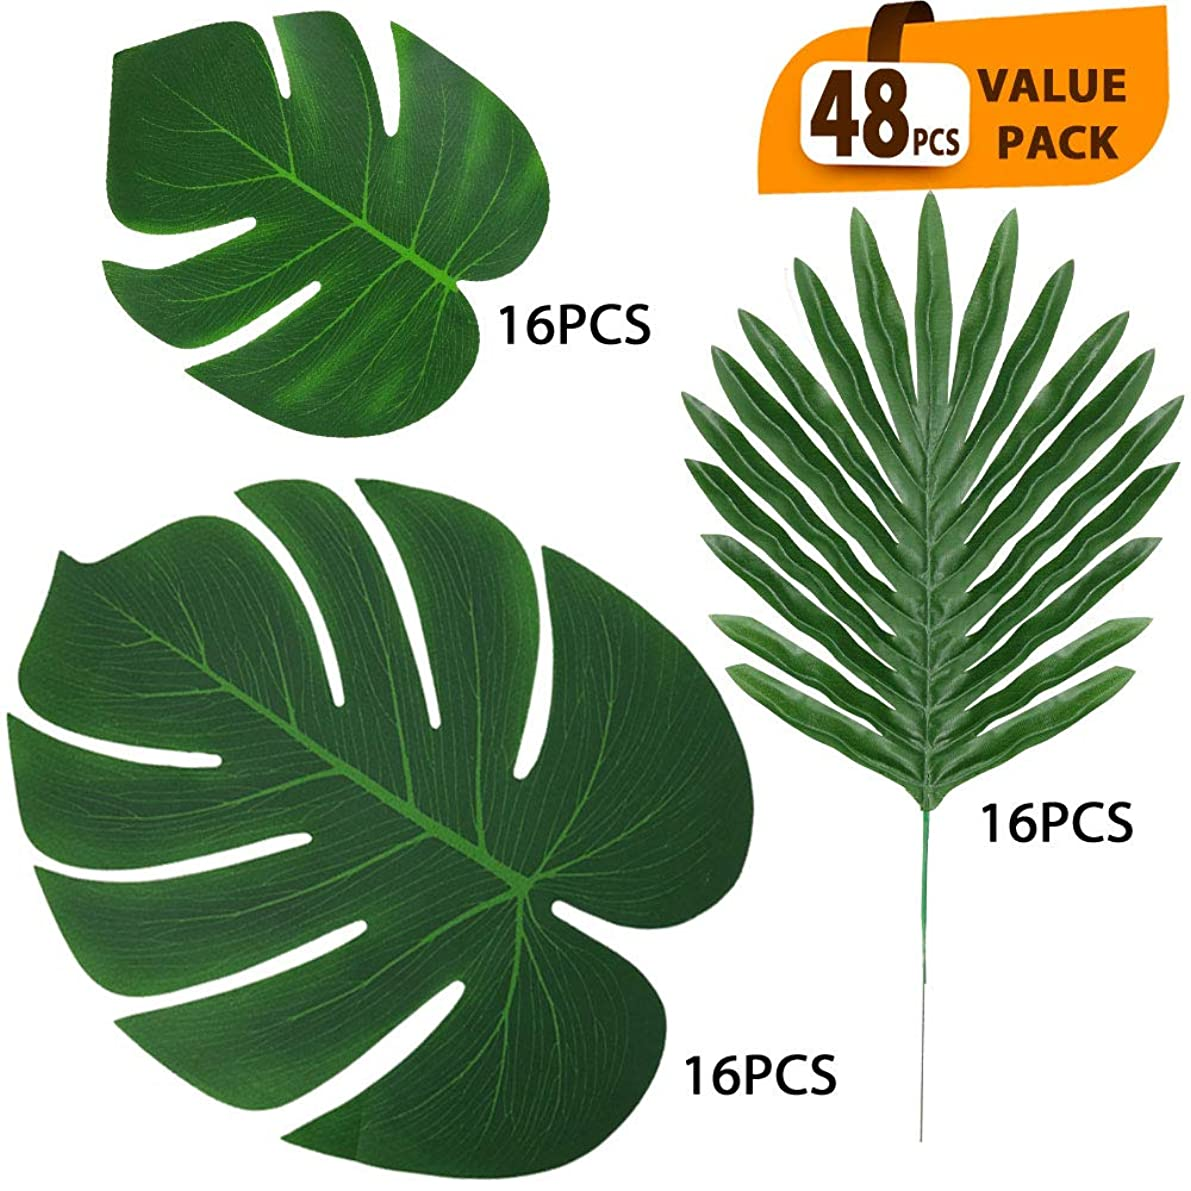 ElaDeco 48 Pcs Artificial Tropical Palm Leaves Luau Party Decoration Faux Palm Leaves Safari Leaves for Hawaiian Luau Party Jungle Beach Birthday Theme Decorations(3 Styles)